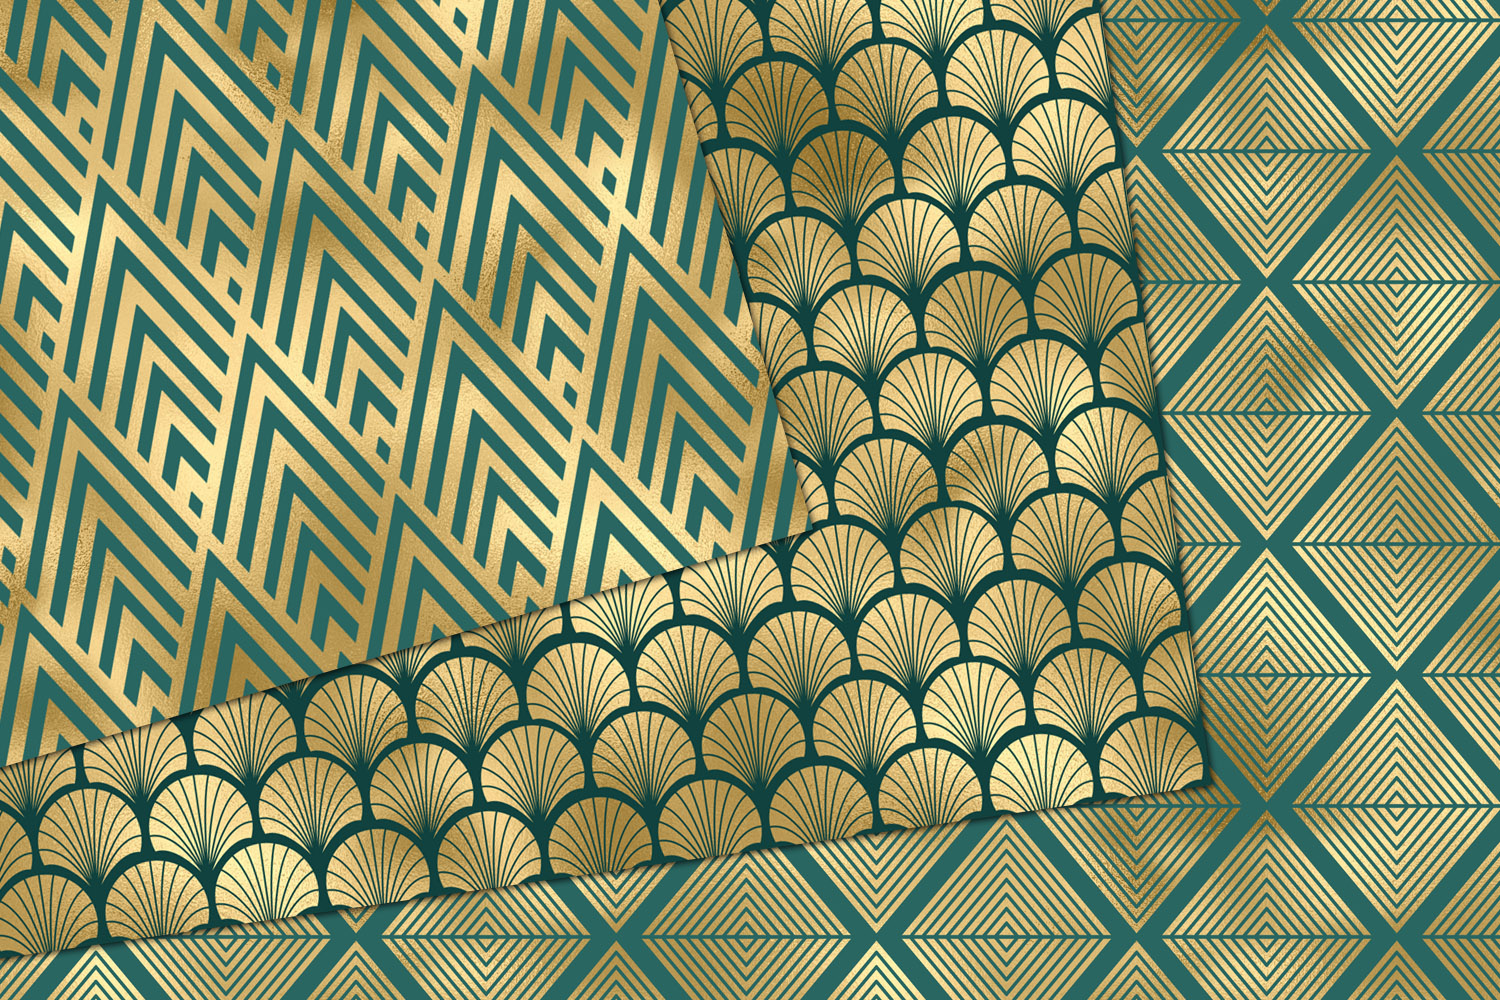 Teal and Gold Art Deco Digital Paper example image 4